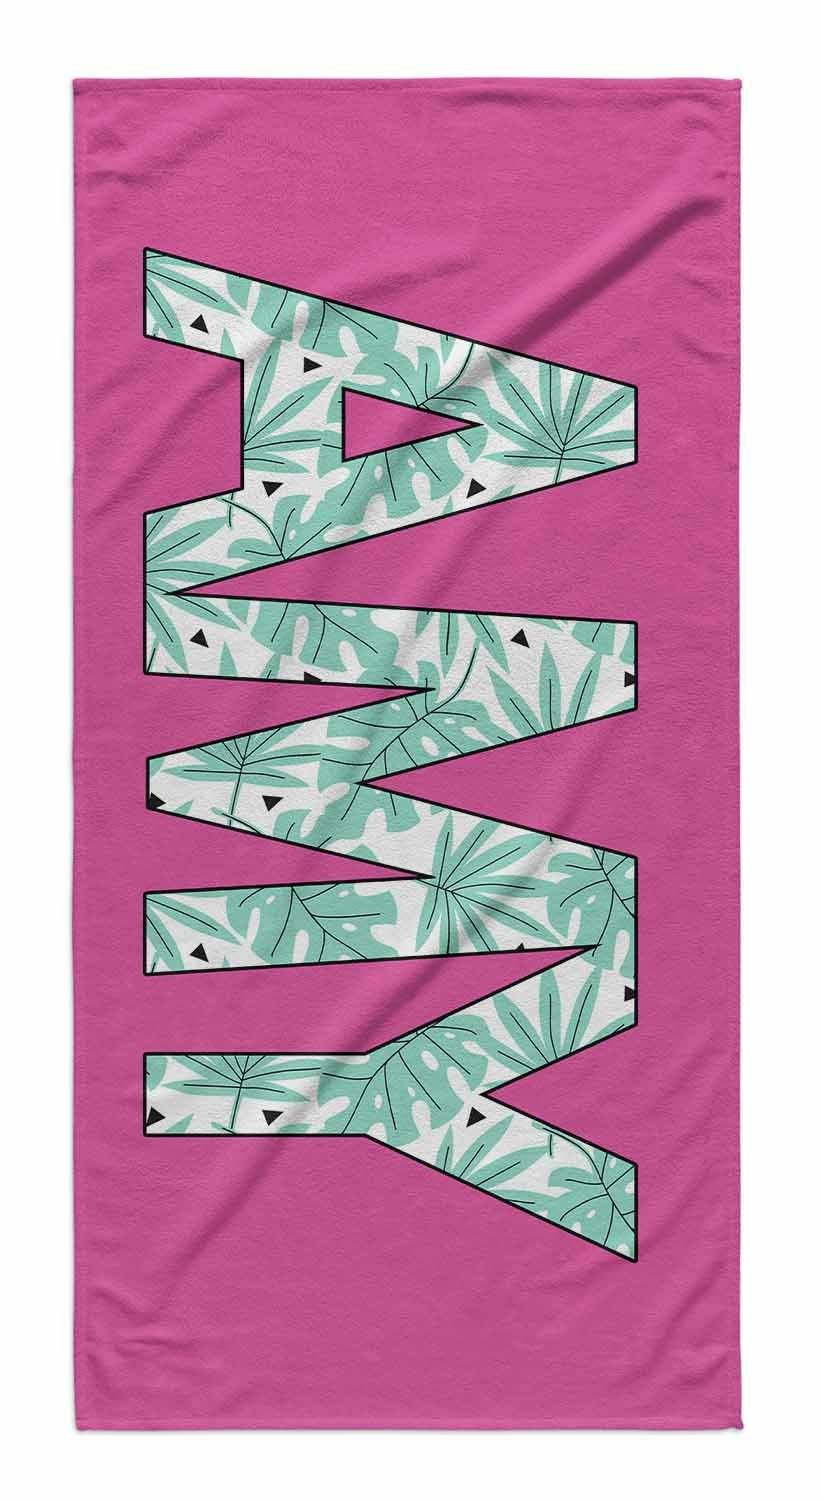 SOLID BOLD PATTERN NAME PERSONALIZED TOWEL - PALMS